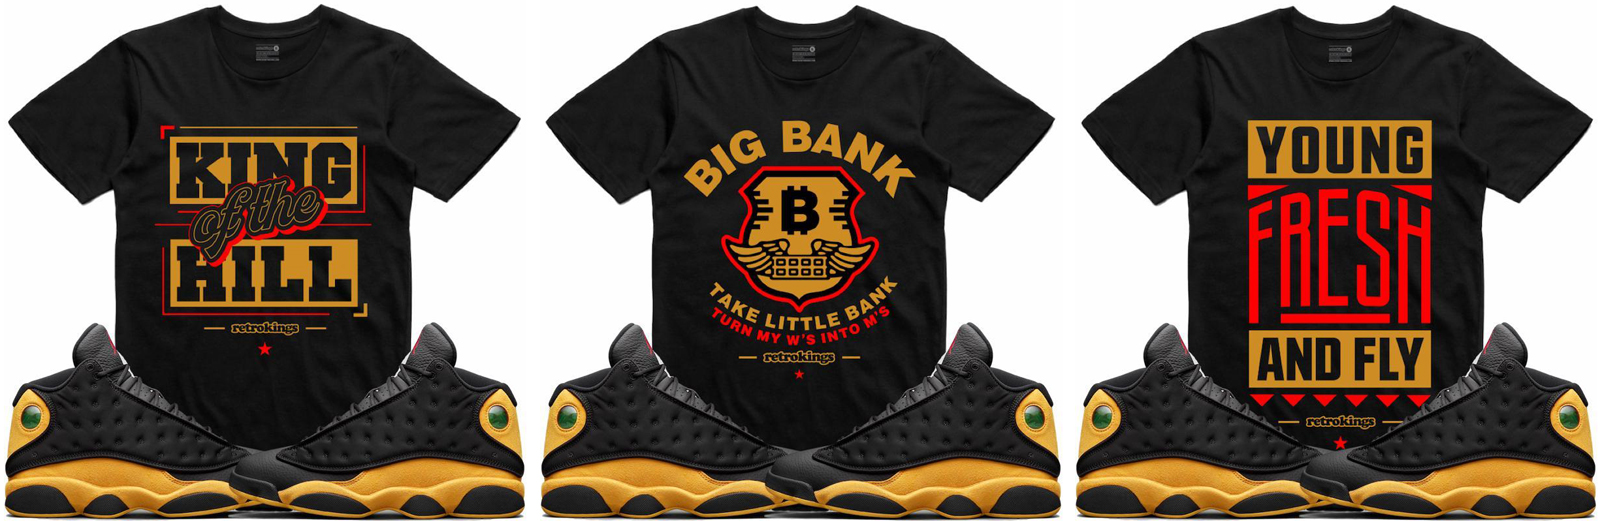 jordan-13-melo-class-of-2002-oak-hill-sneaker-tee-shirts-retro-kings